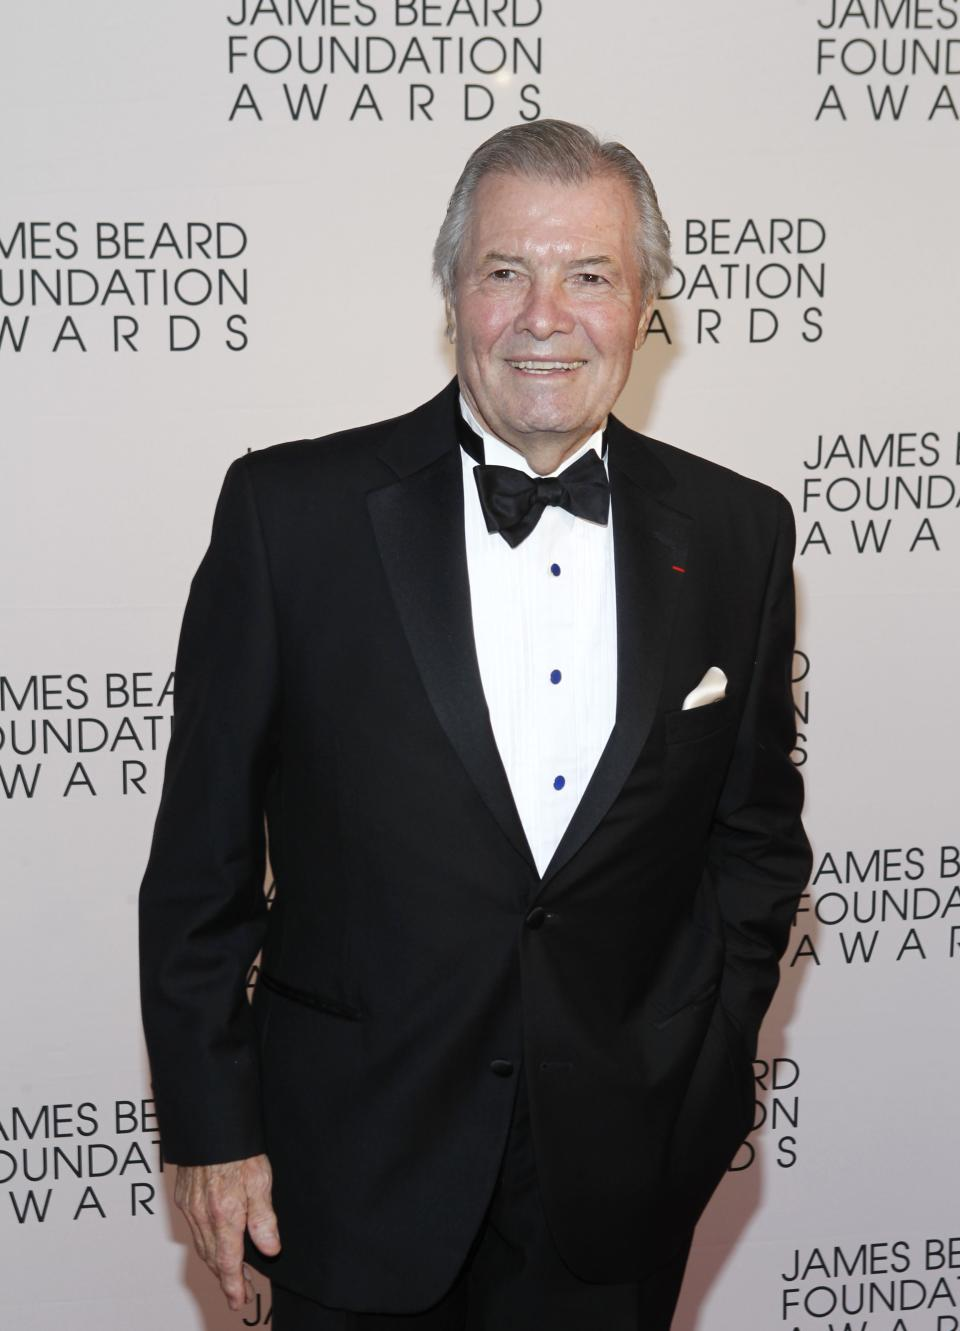 Chef Jacques Pepin arrives for the James Beard Foundation Awards, Monday, May 7, 2012, in New York. (AP Photo/Jason DeCrow)